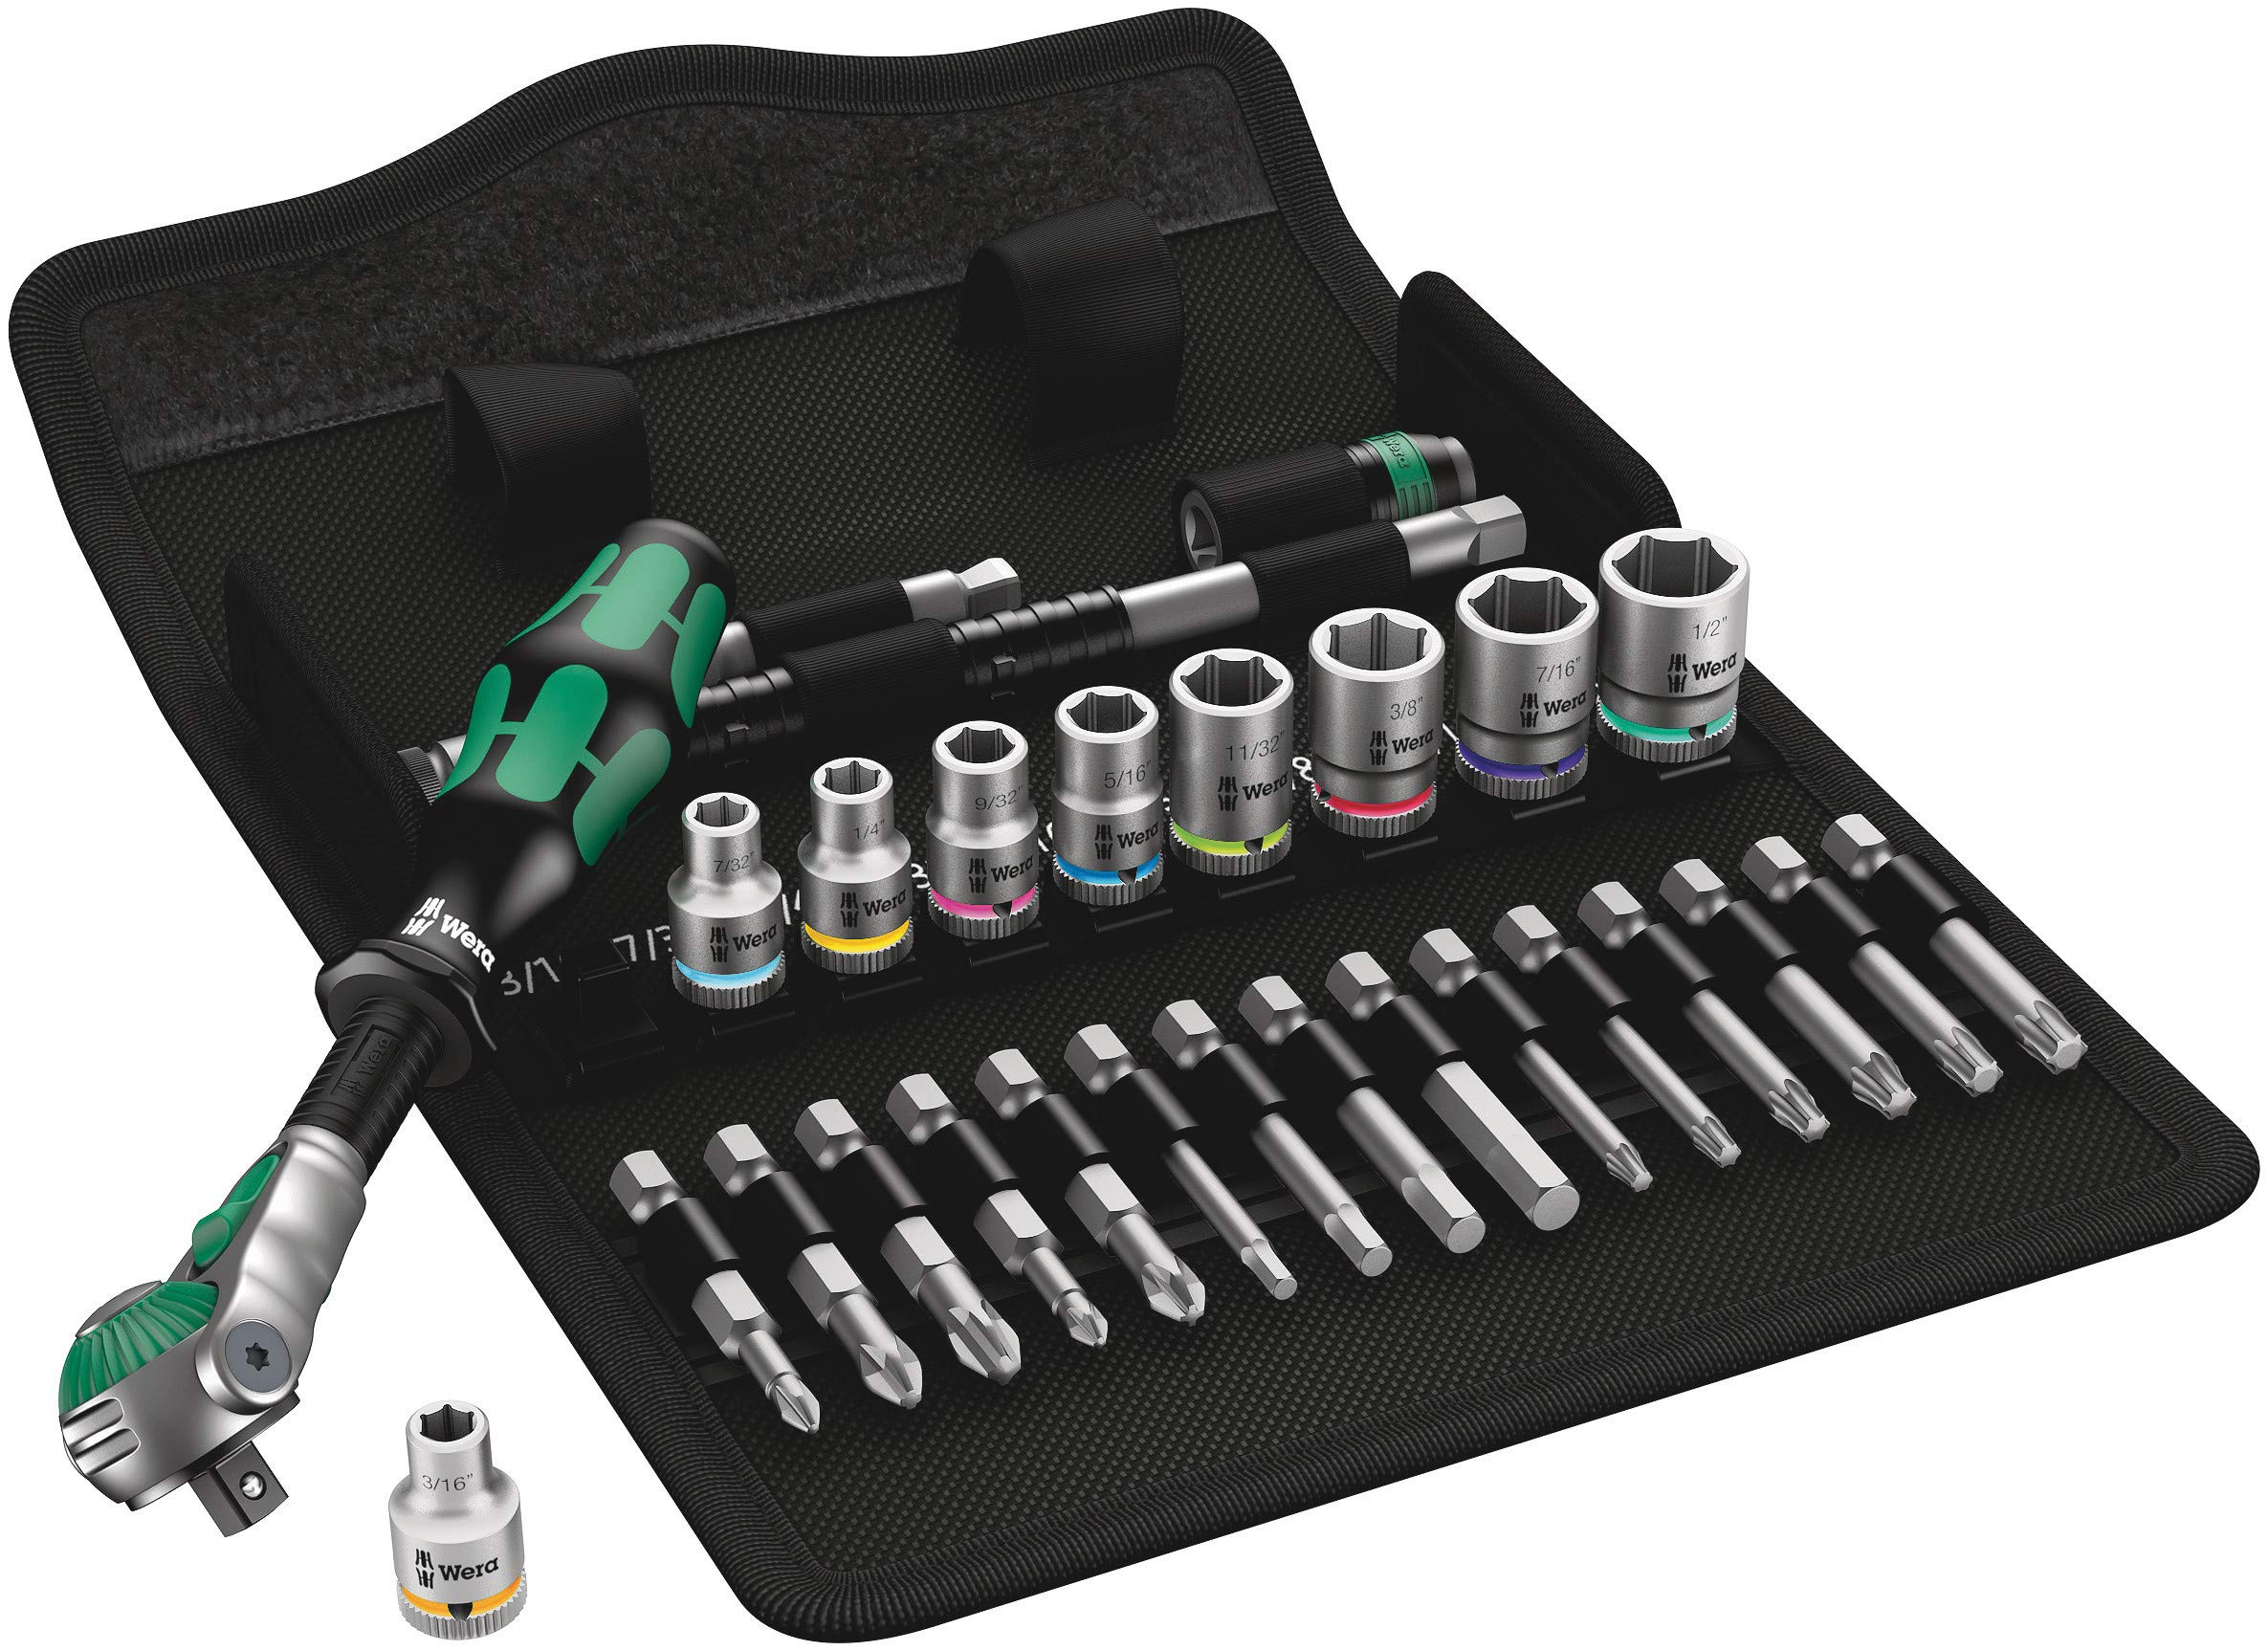 Wera 5004019001 Zyklop 8100 SA9 1/4'' Drive Metal-Speed Multi-Function Ratchet & Socket Set (28Piece)